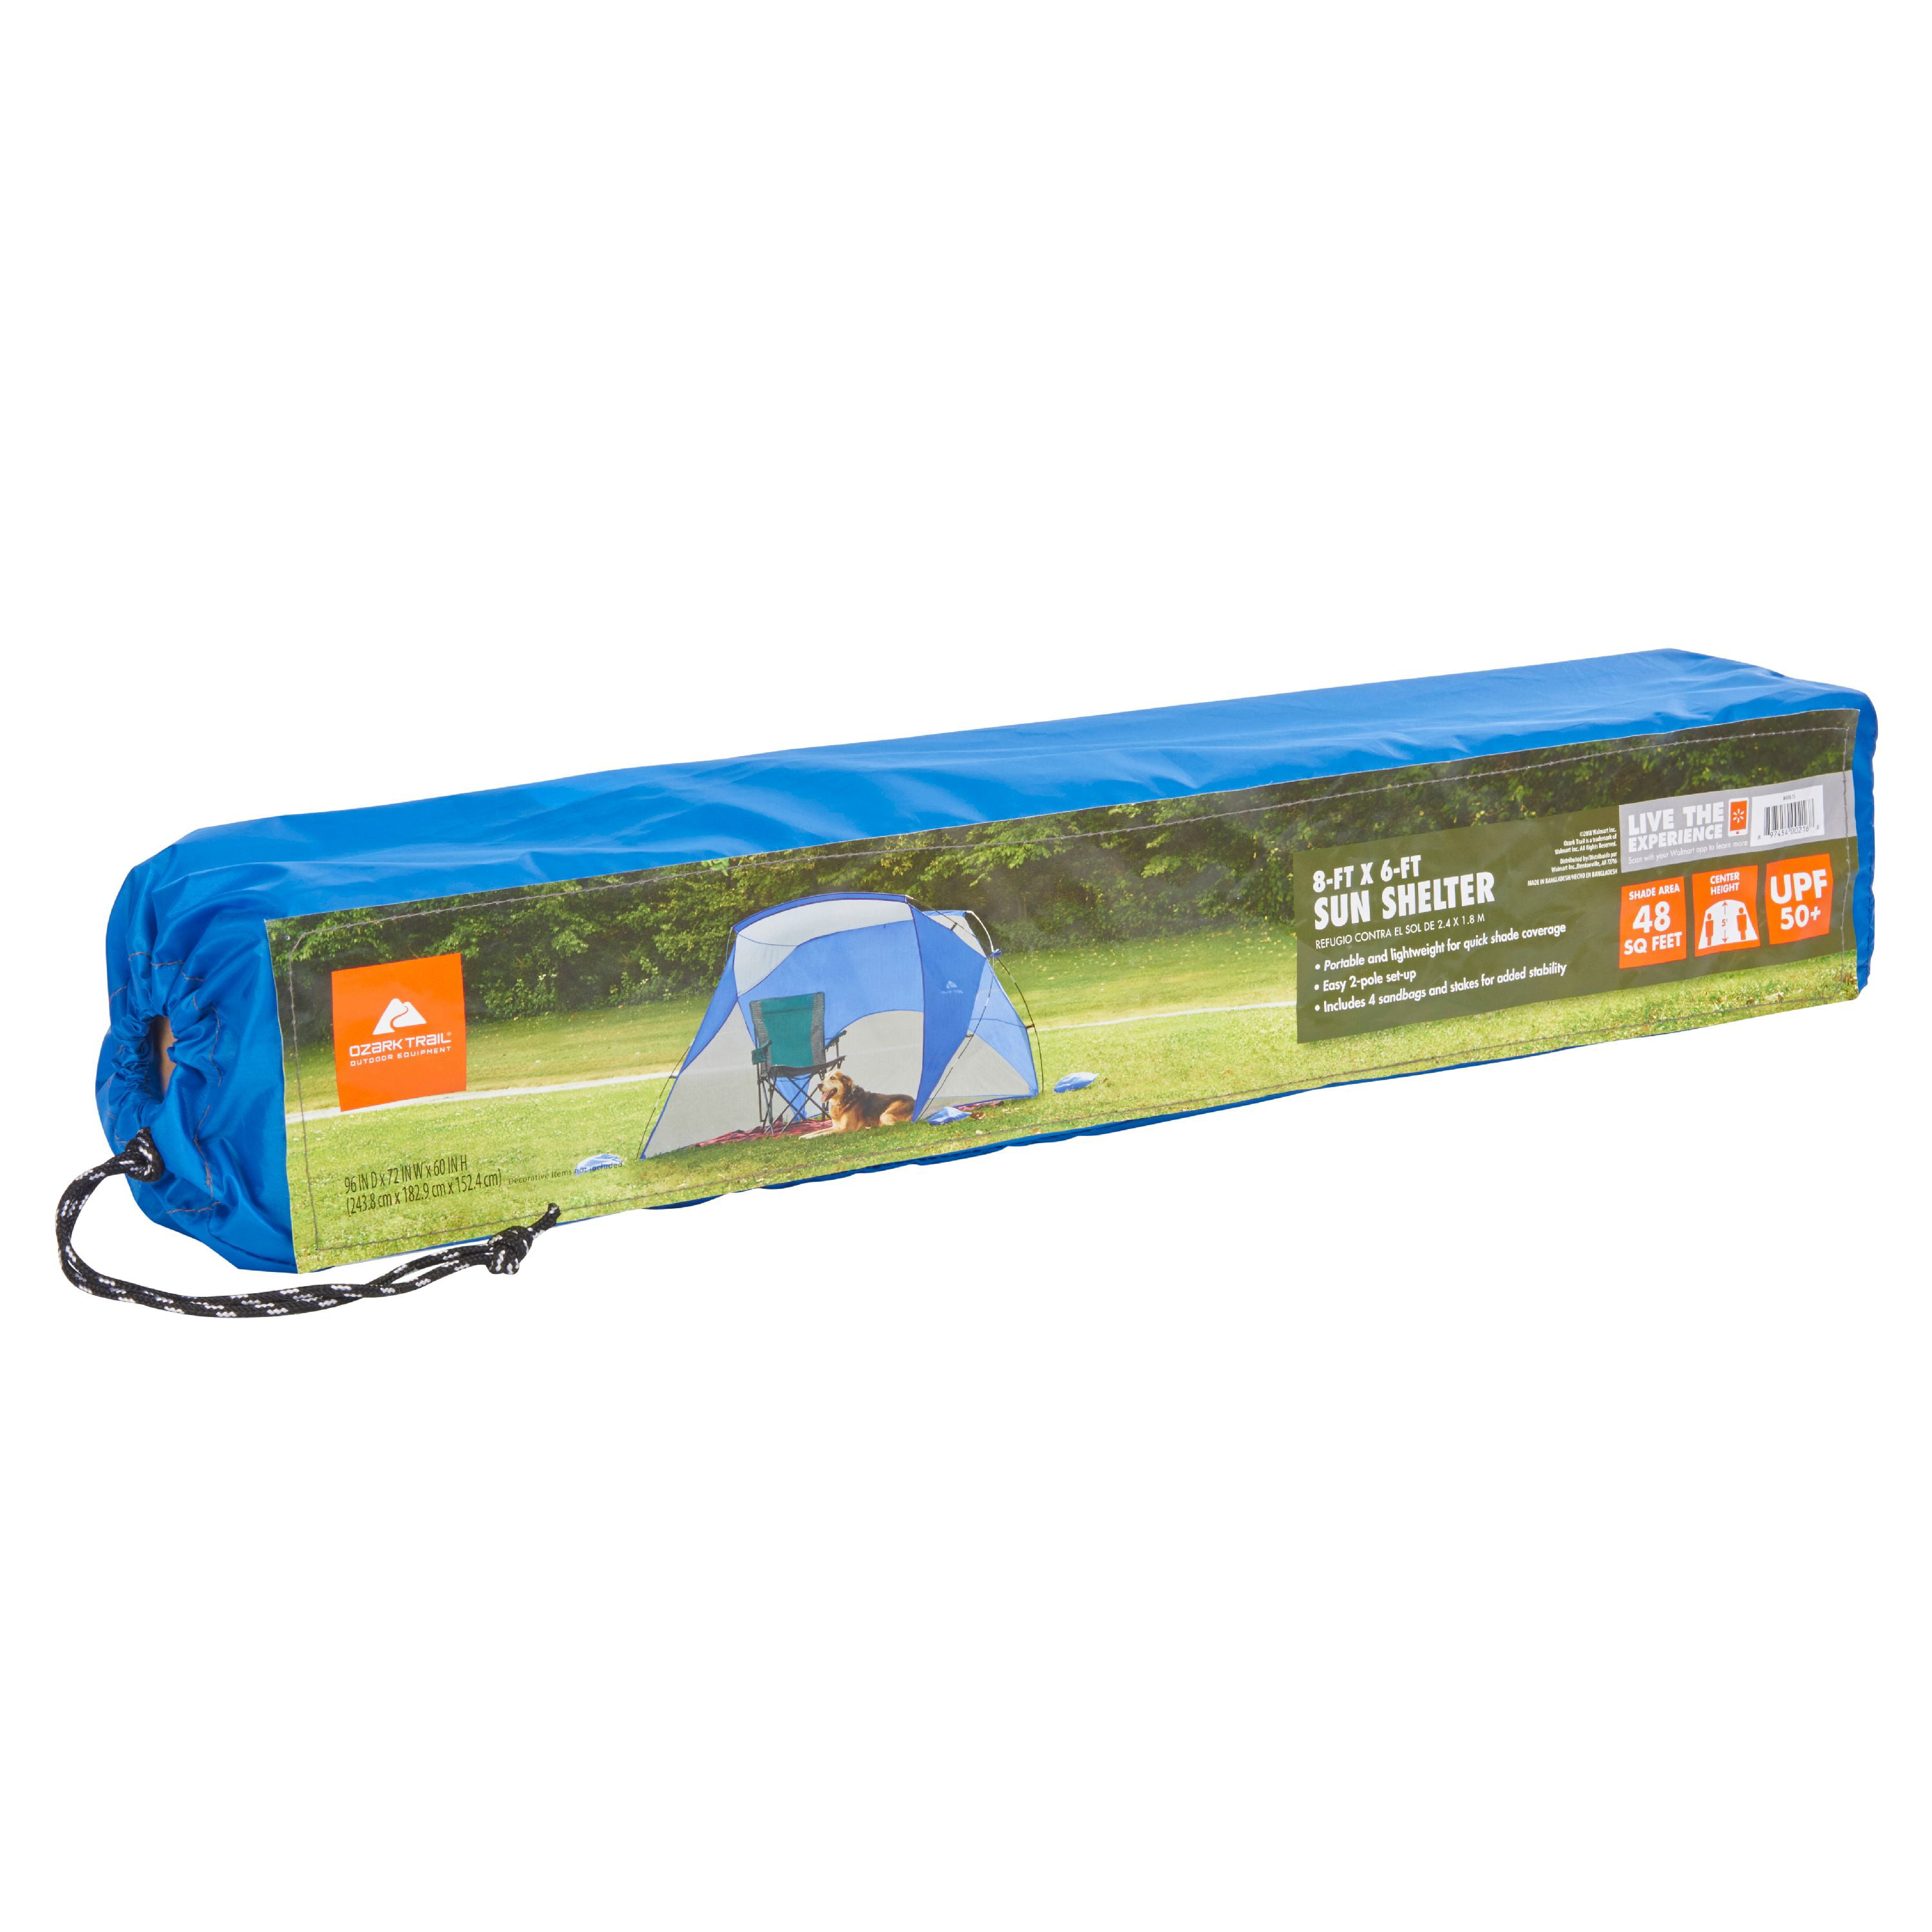 Ozark Trail 8 Ft X 6 Ft Portable Sun Shelter With Uv Protection Walmart Com Walmart Com